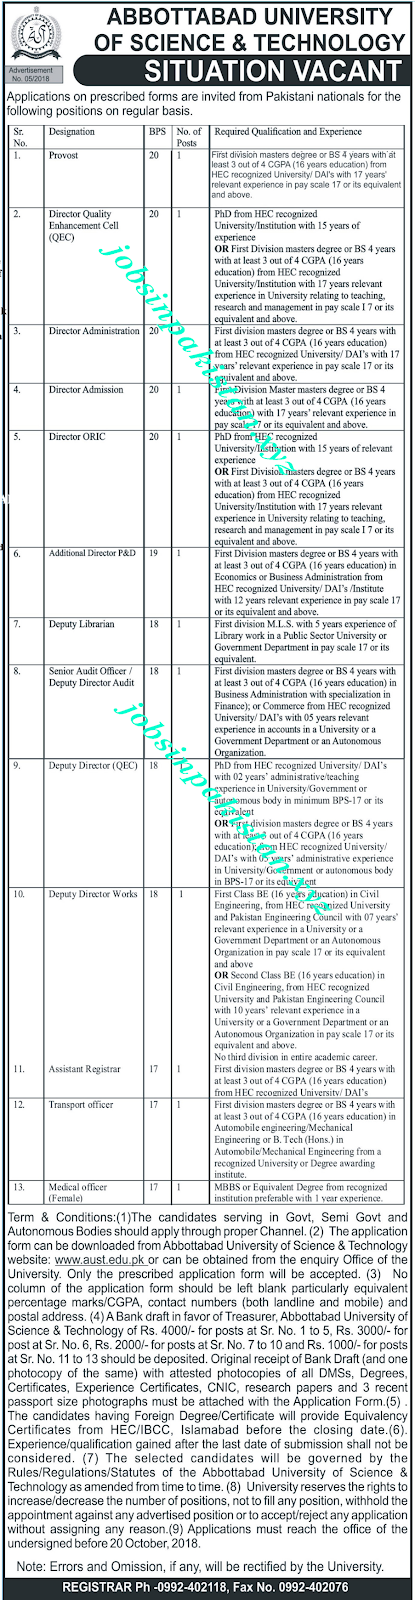 Abbottabad University of Science & Technology Jobs 2018 Advertisement